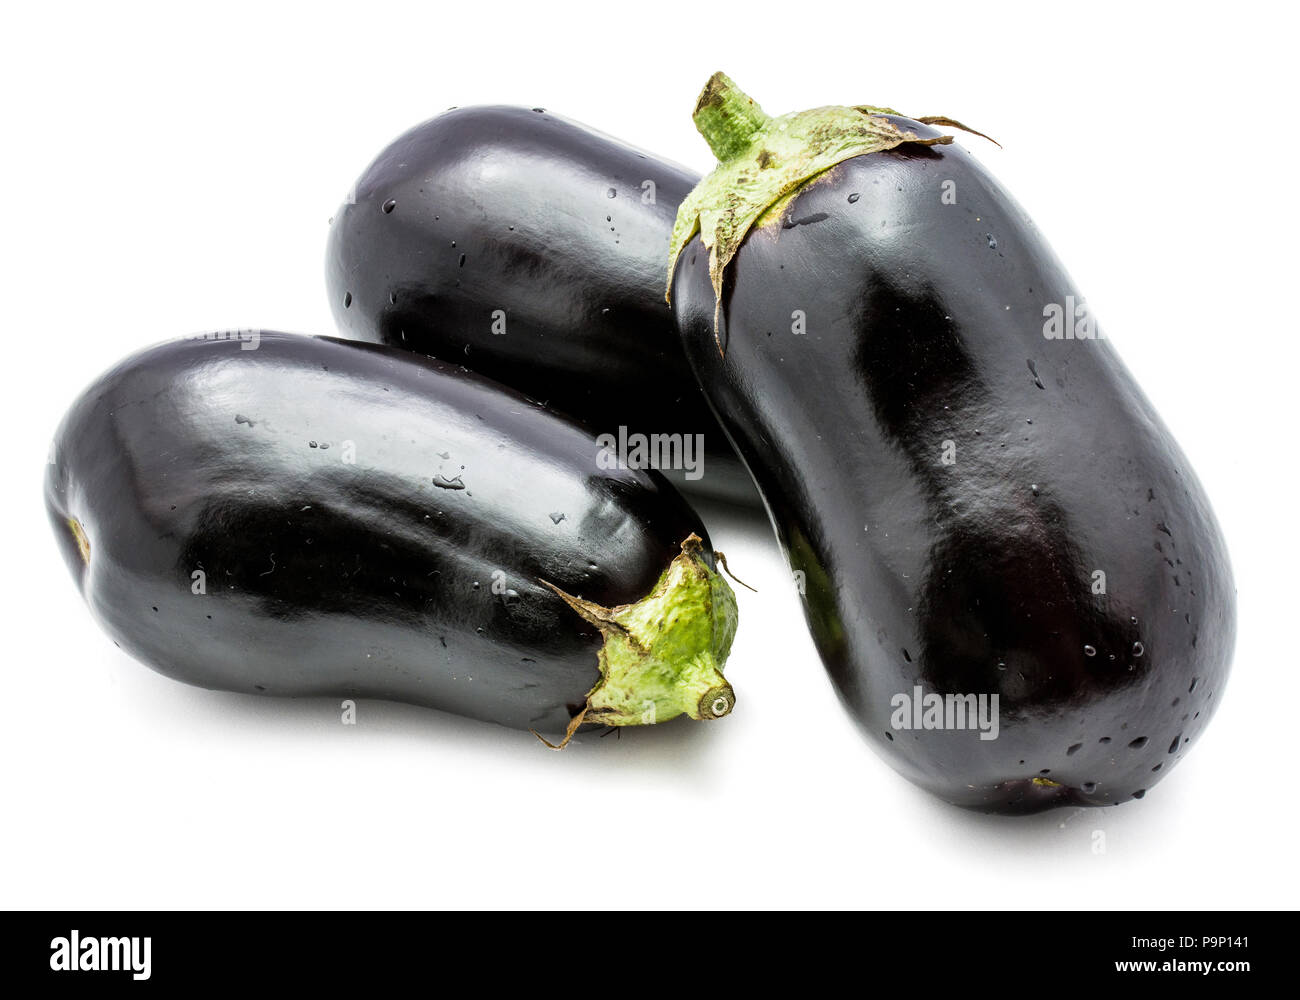 Three whole eggplants (aubergine) isolated on white background - Stock Image